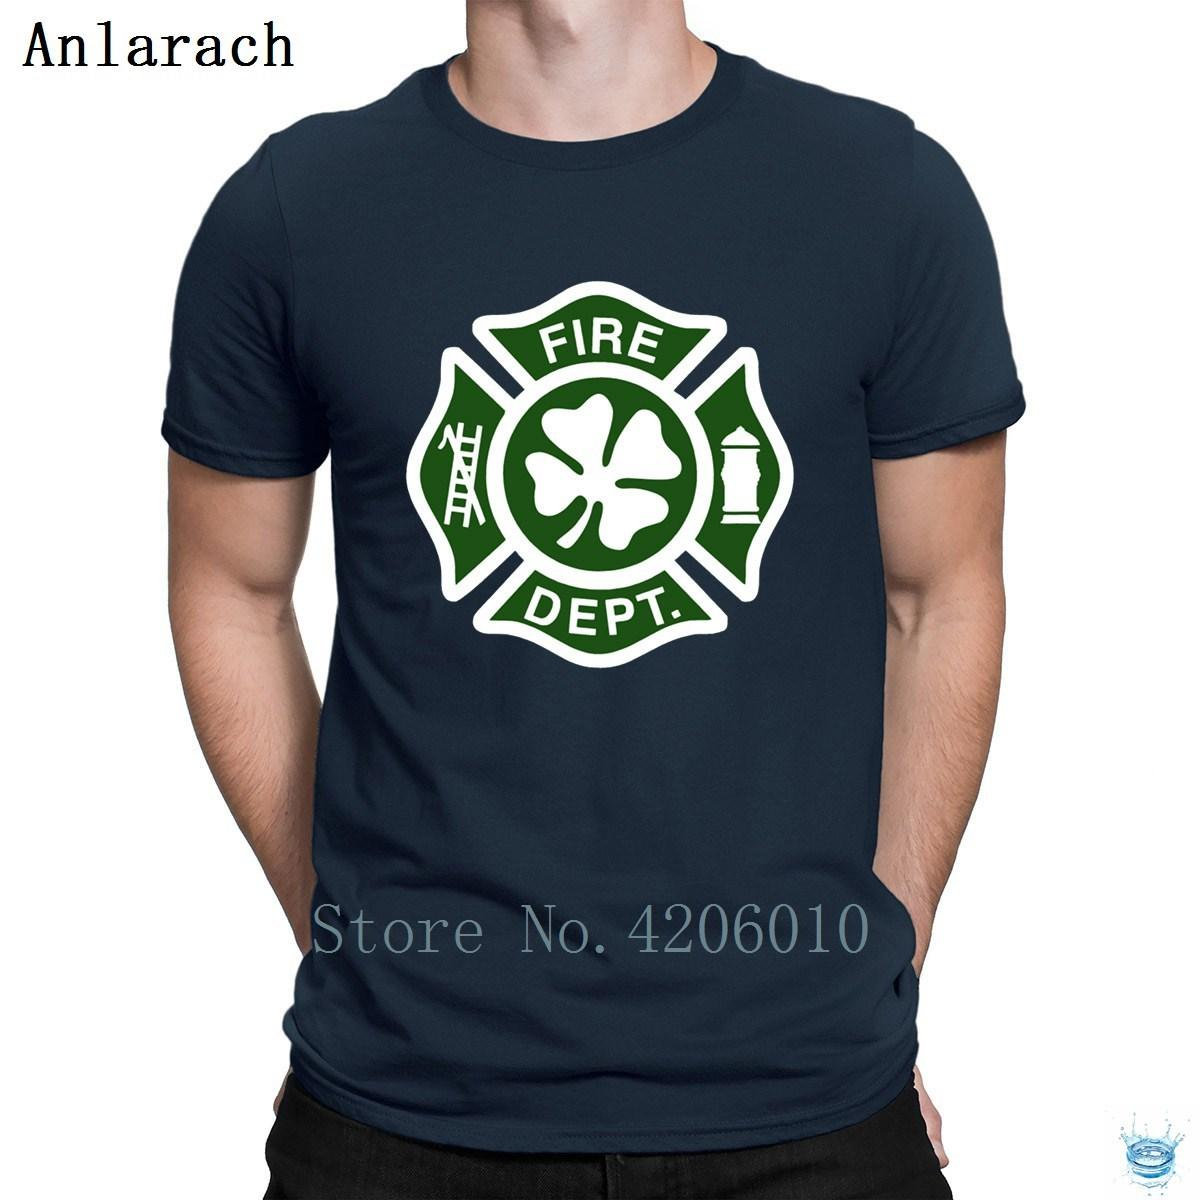 9ad592863 Irish Fire Department Tshirt Spring Autumn Fitness The New Cotton Men's Tshirt  Customized HipHop Natural Tee Shirt Websites